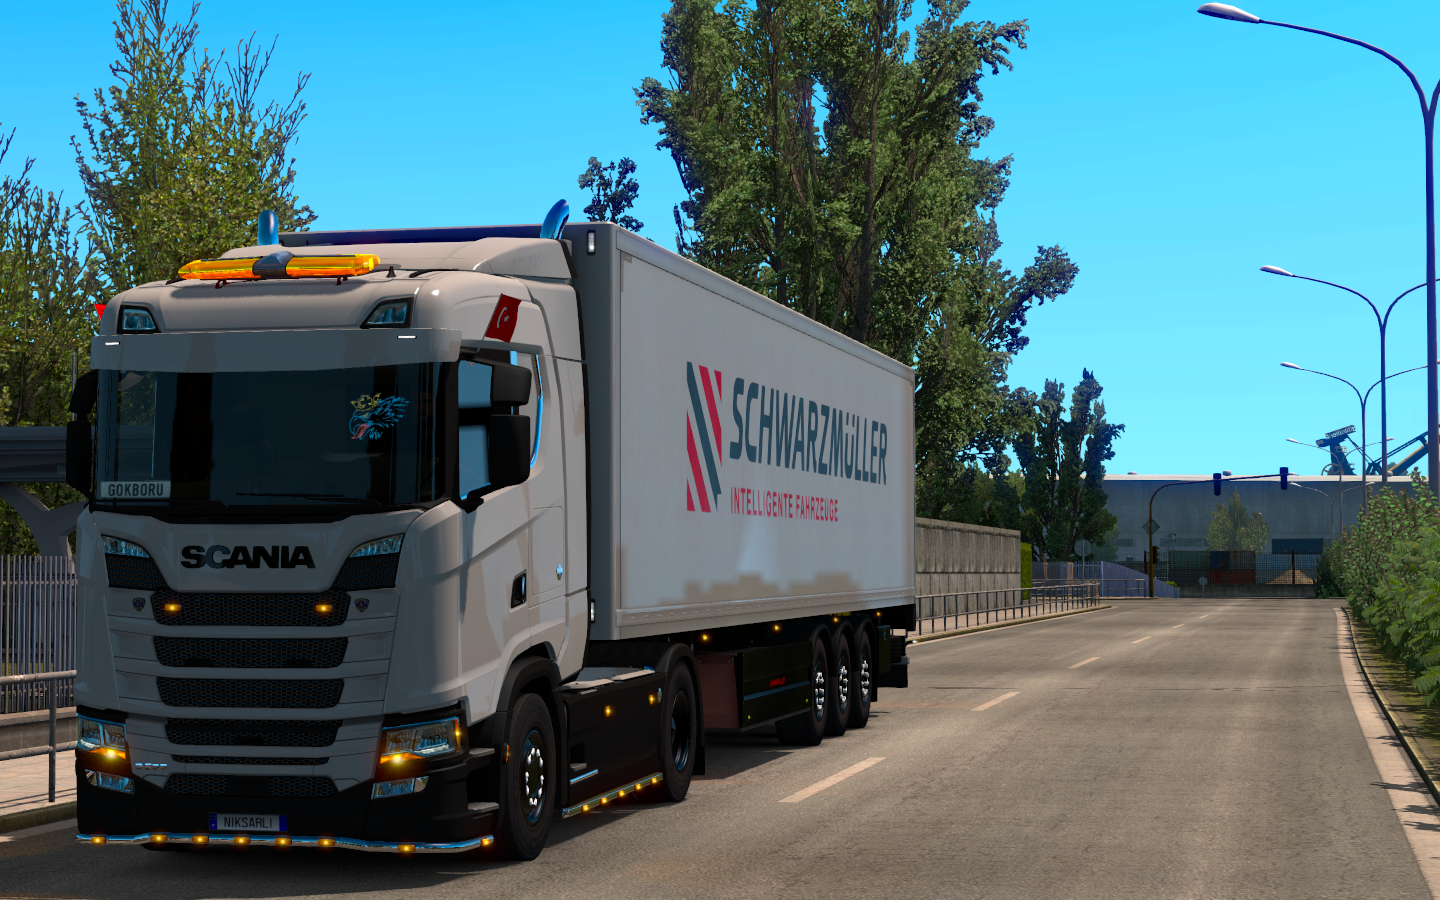 ets2_20190807_001634_00.png